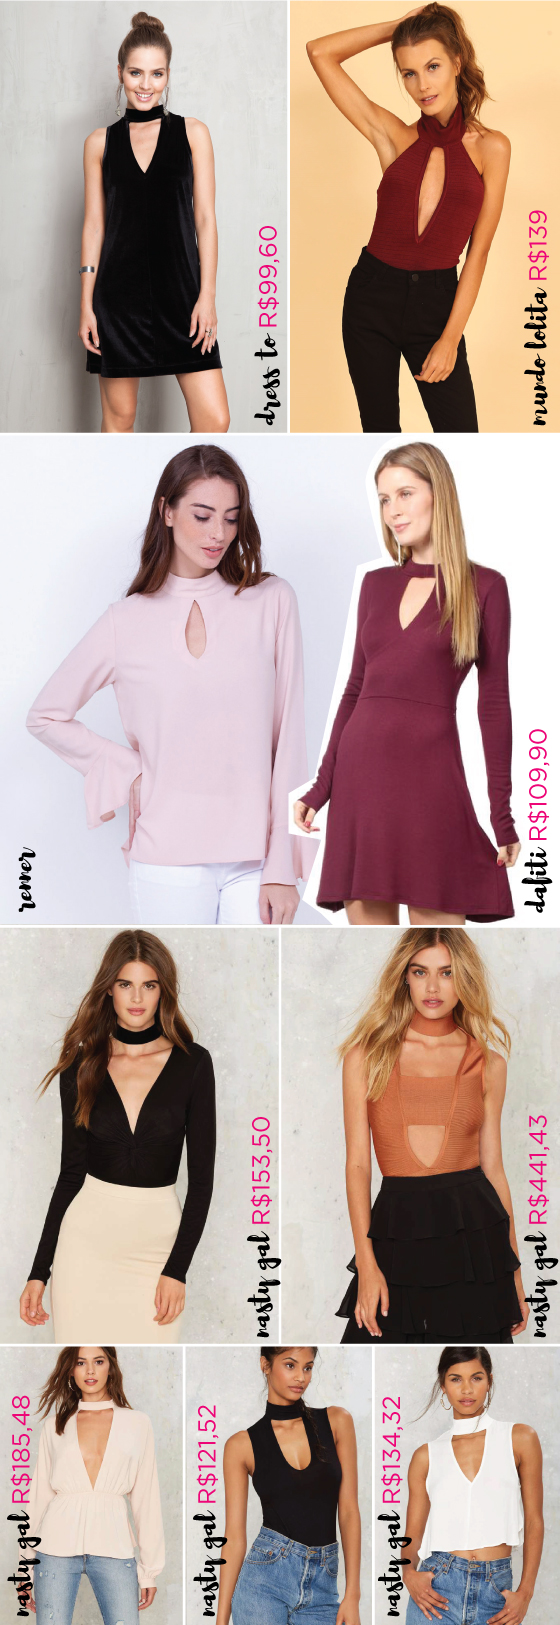 blusa-body-gola-alta-decote-estilo-look-tendencia